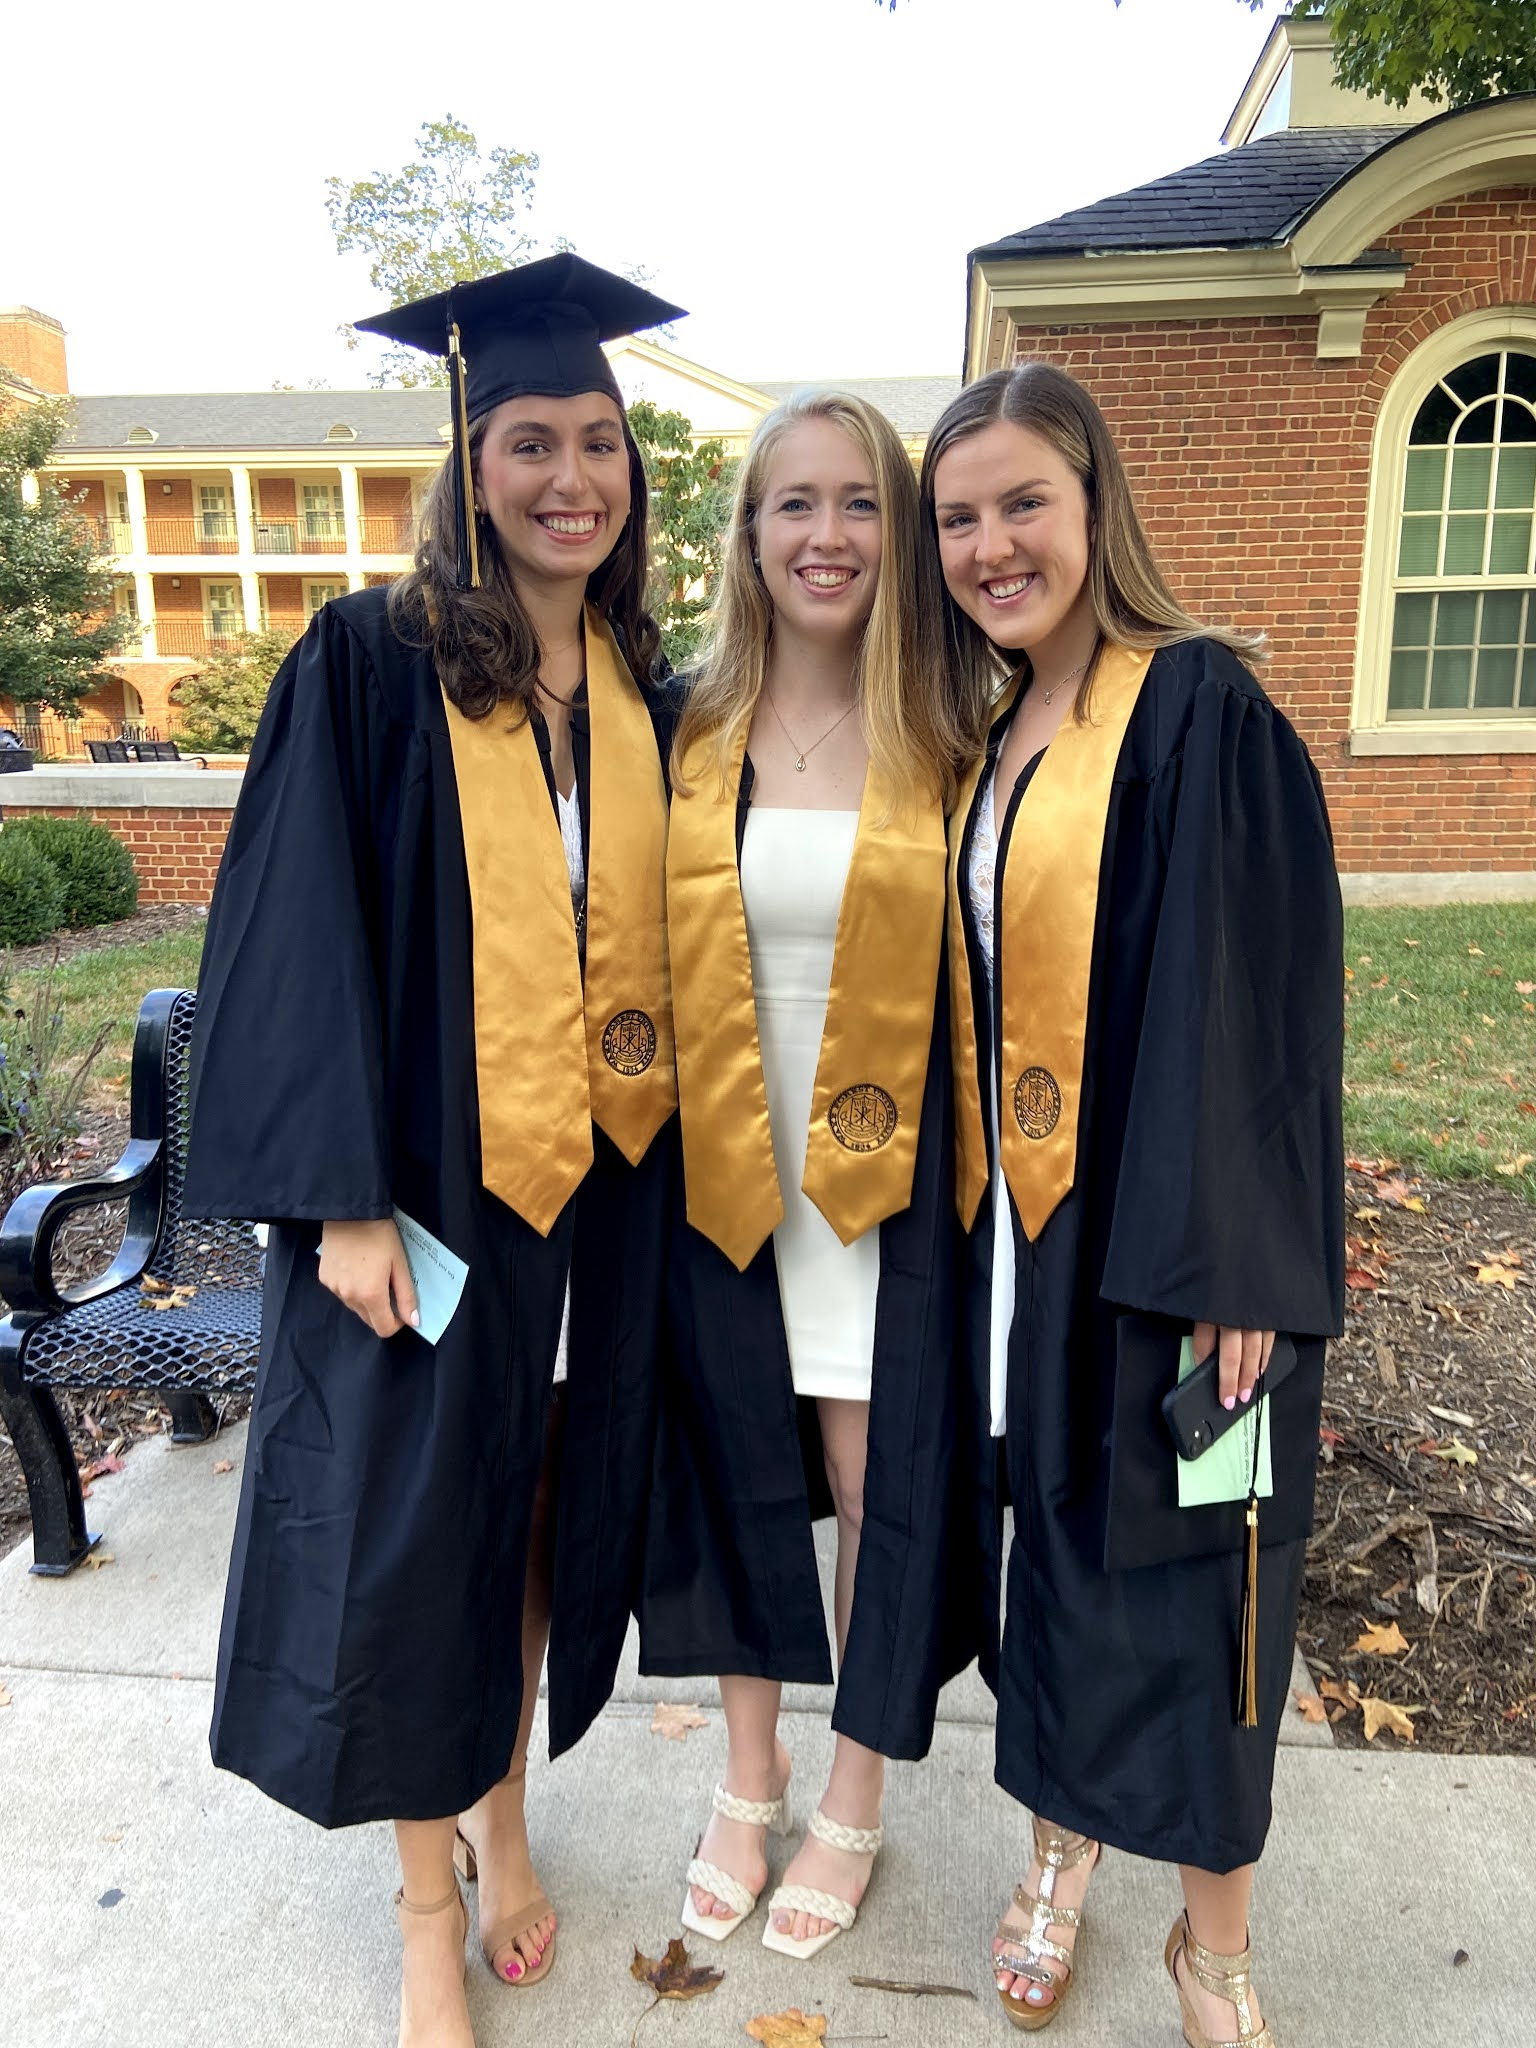 friends, cap and gown